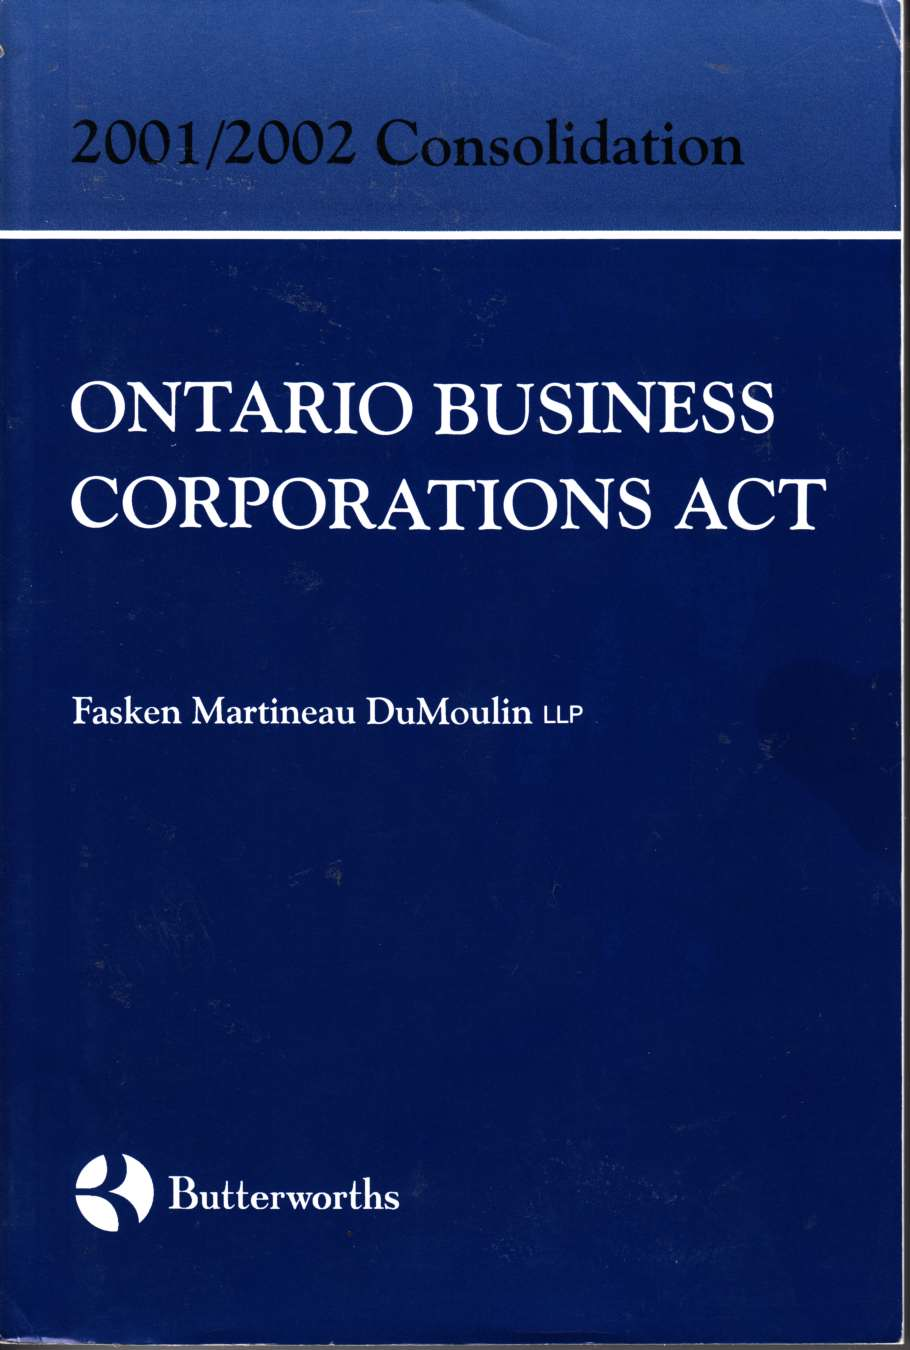 Image for 2001/2002 Ontario Business Corporations Act Consolidation